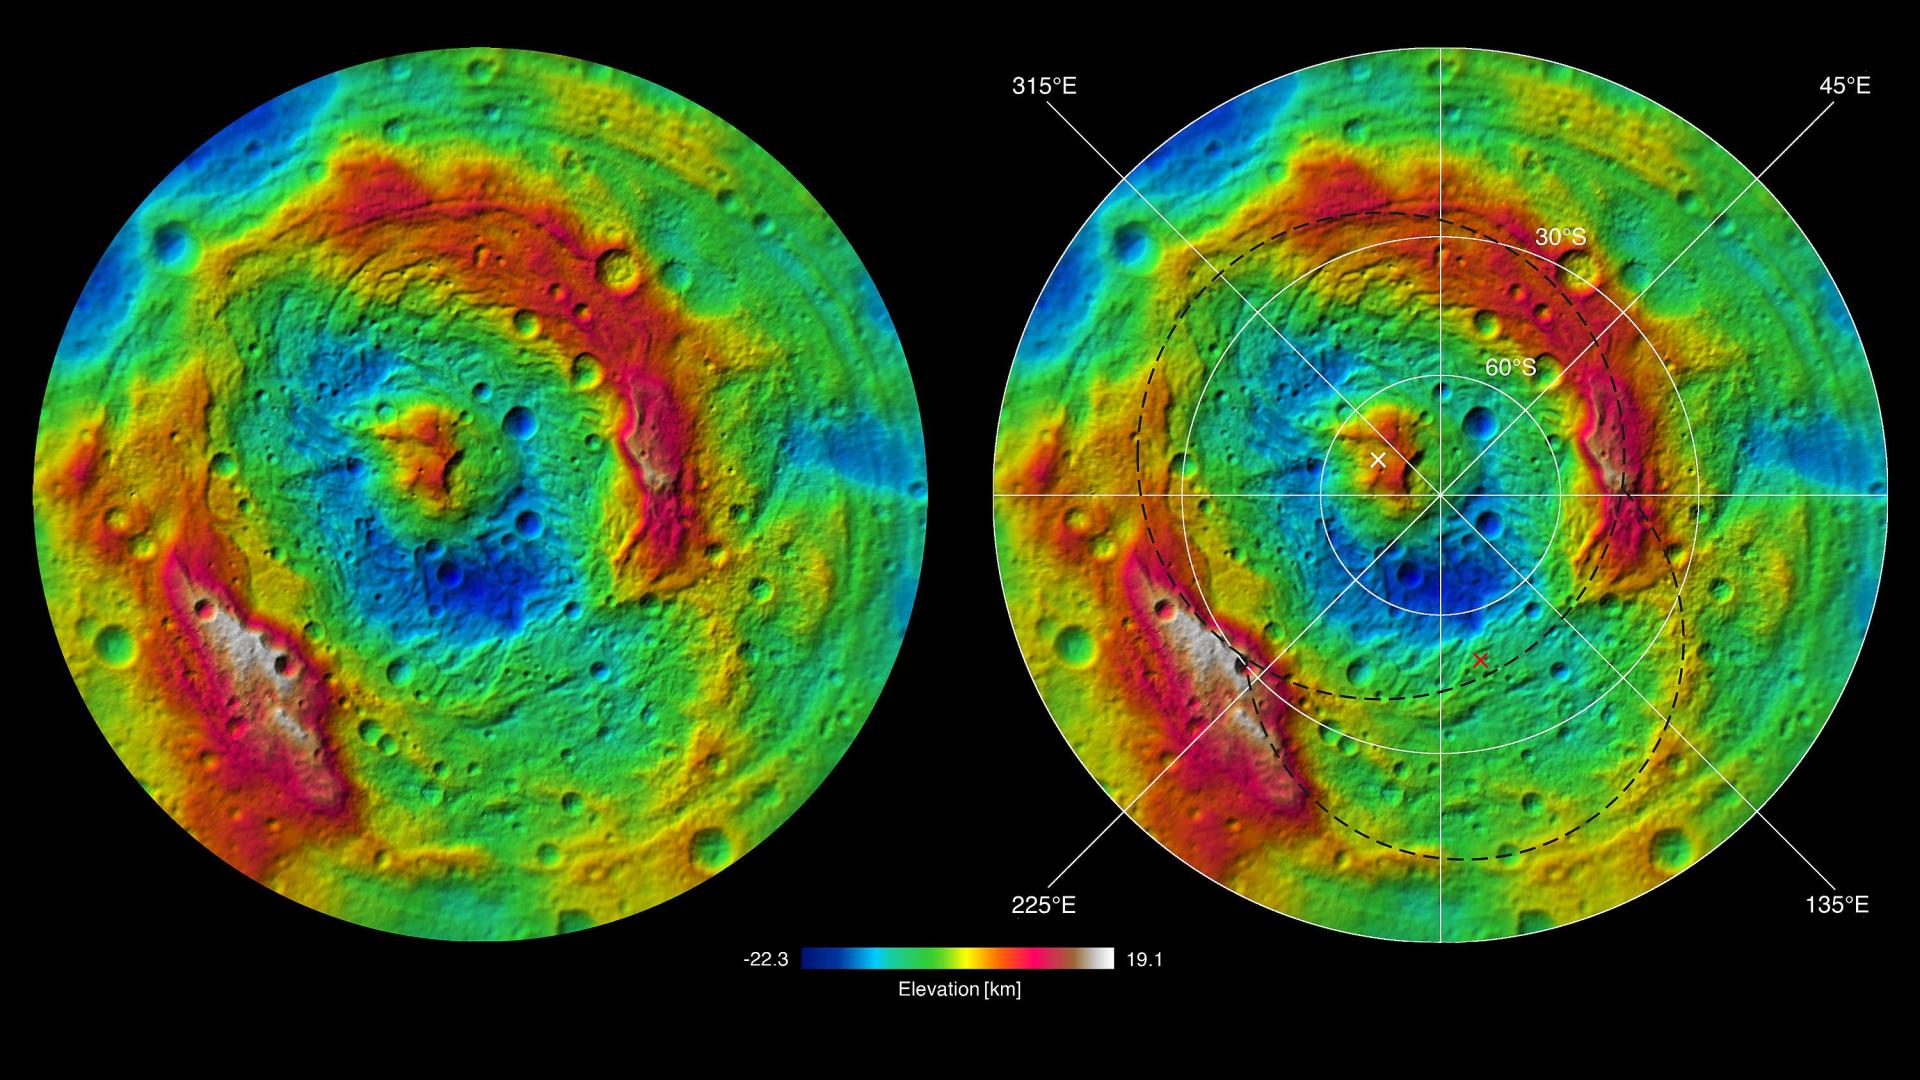 The topographical map reveals a double impact at Vesta's south pole